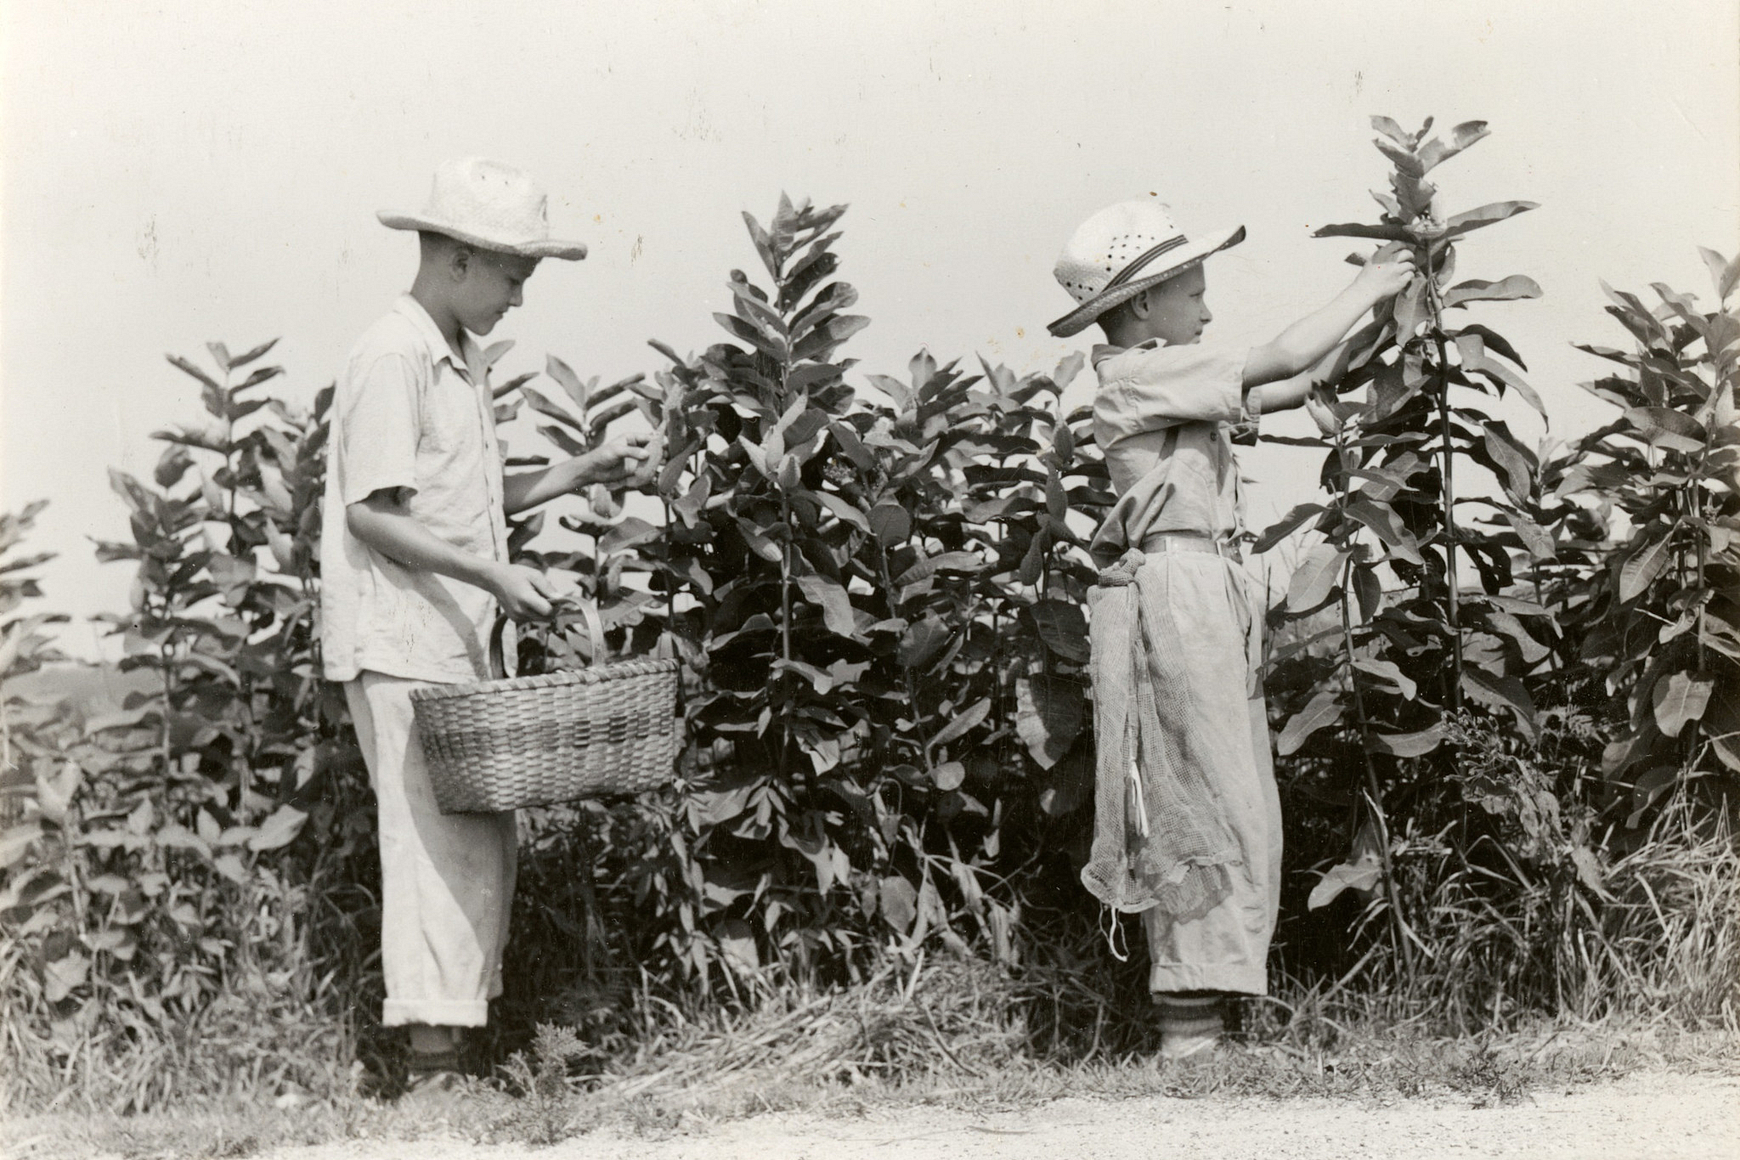 Historic photo of two young boys picking milkweed pods